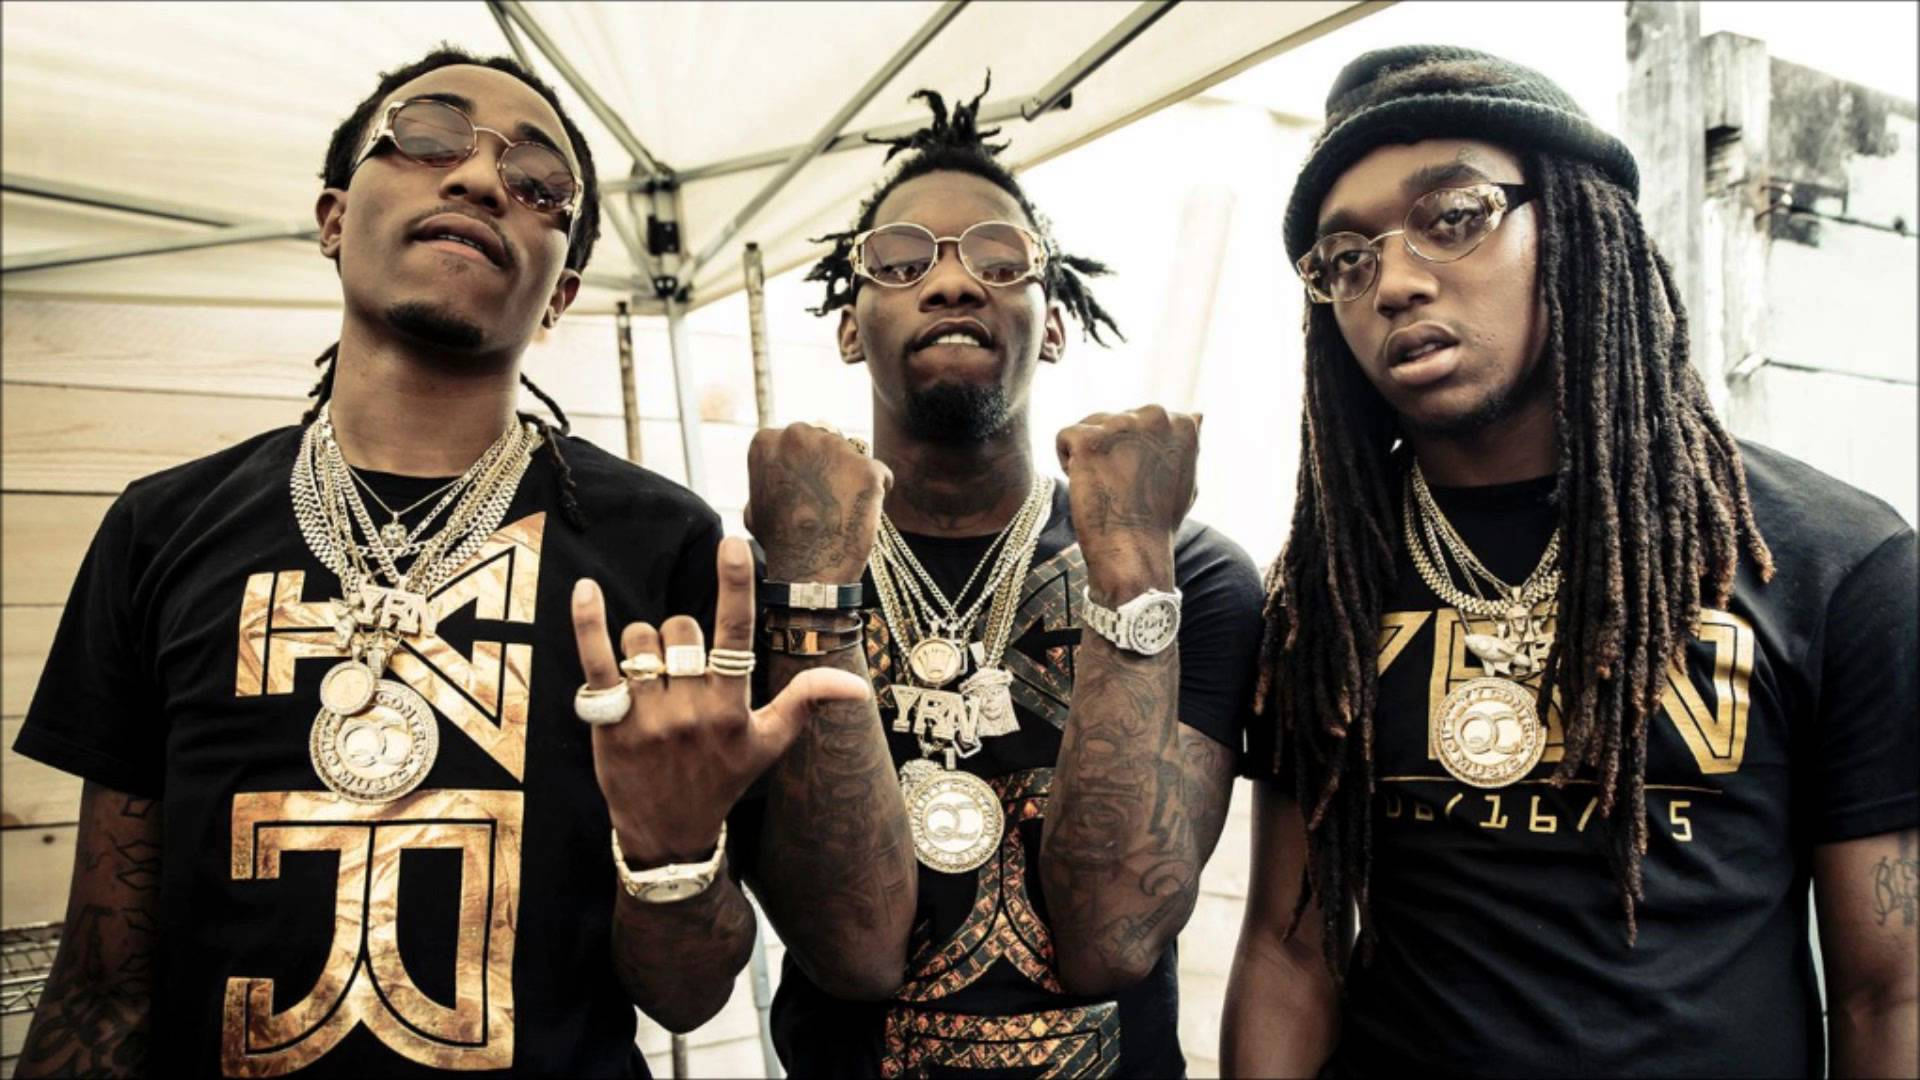 Migos ft. Johnny cinco top floor download and stream | baseshare.